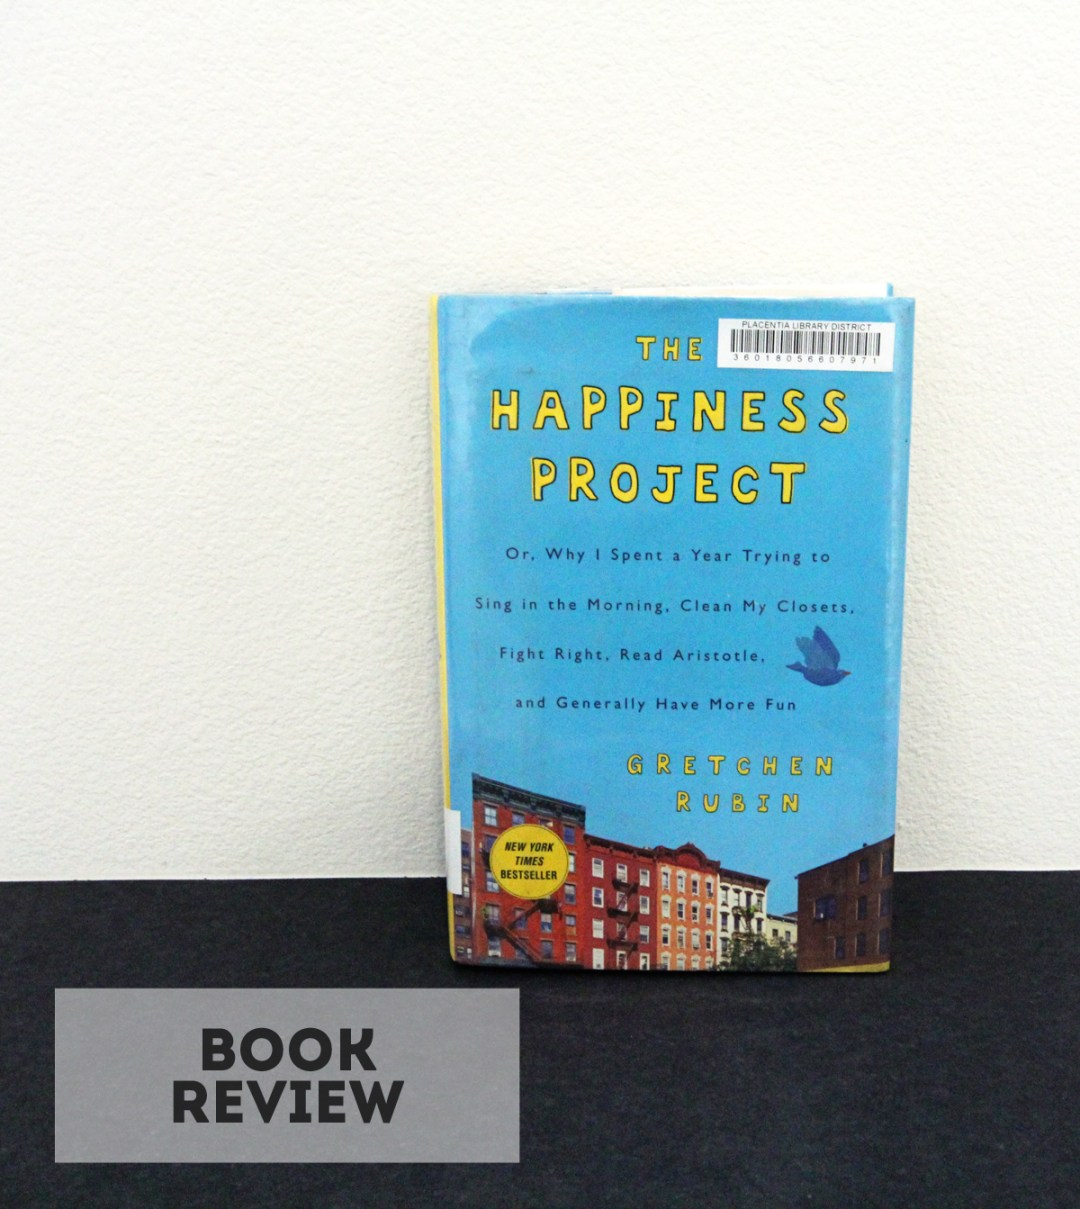 The Happiness Project Book Review - www.randomolive.com